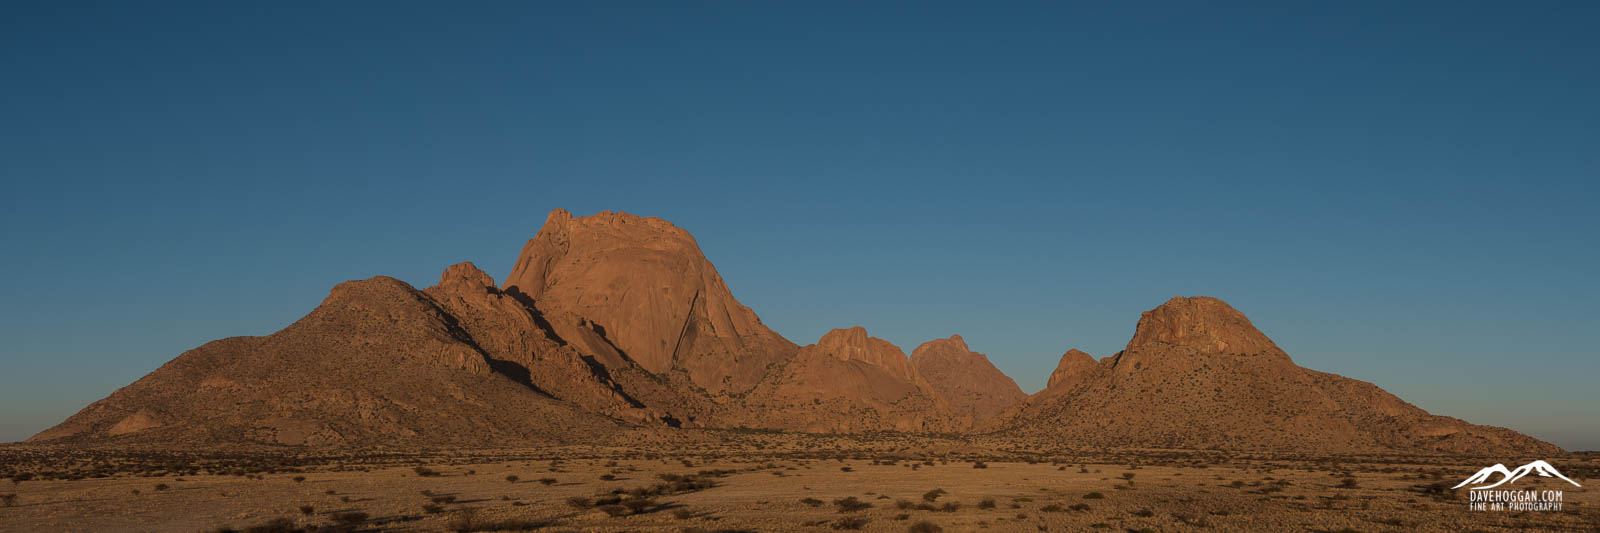 Spitzkoppe Pano 1600px